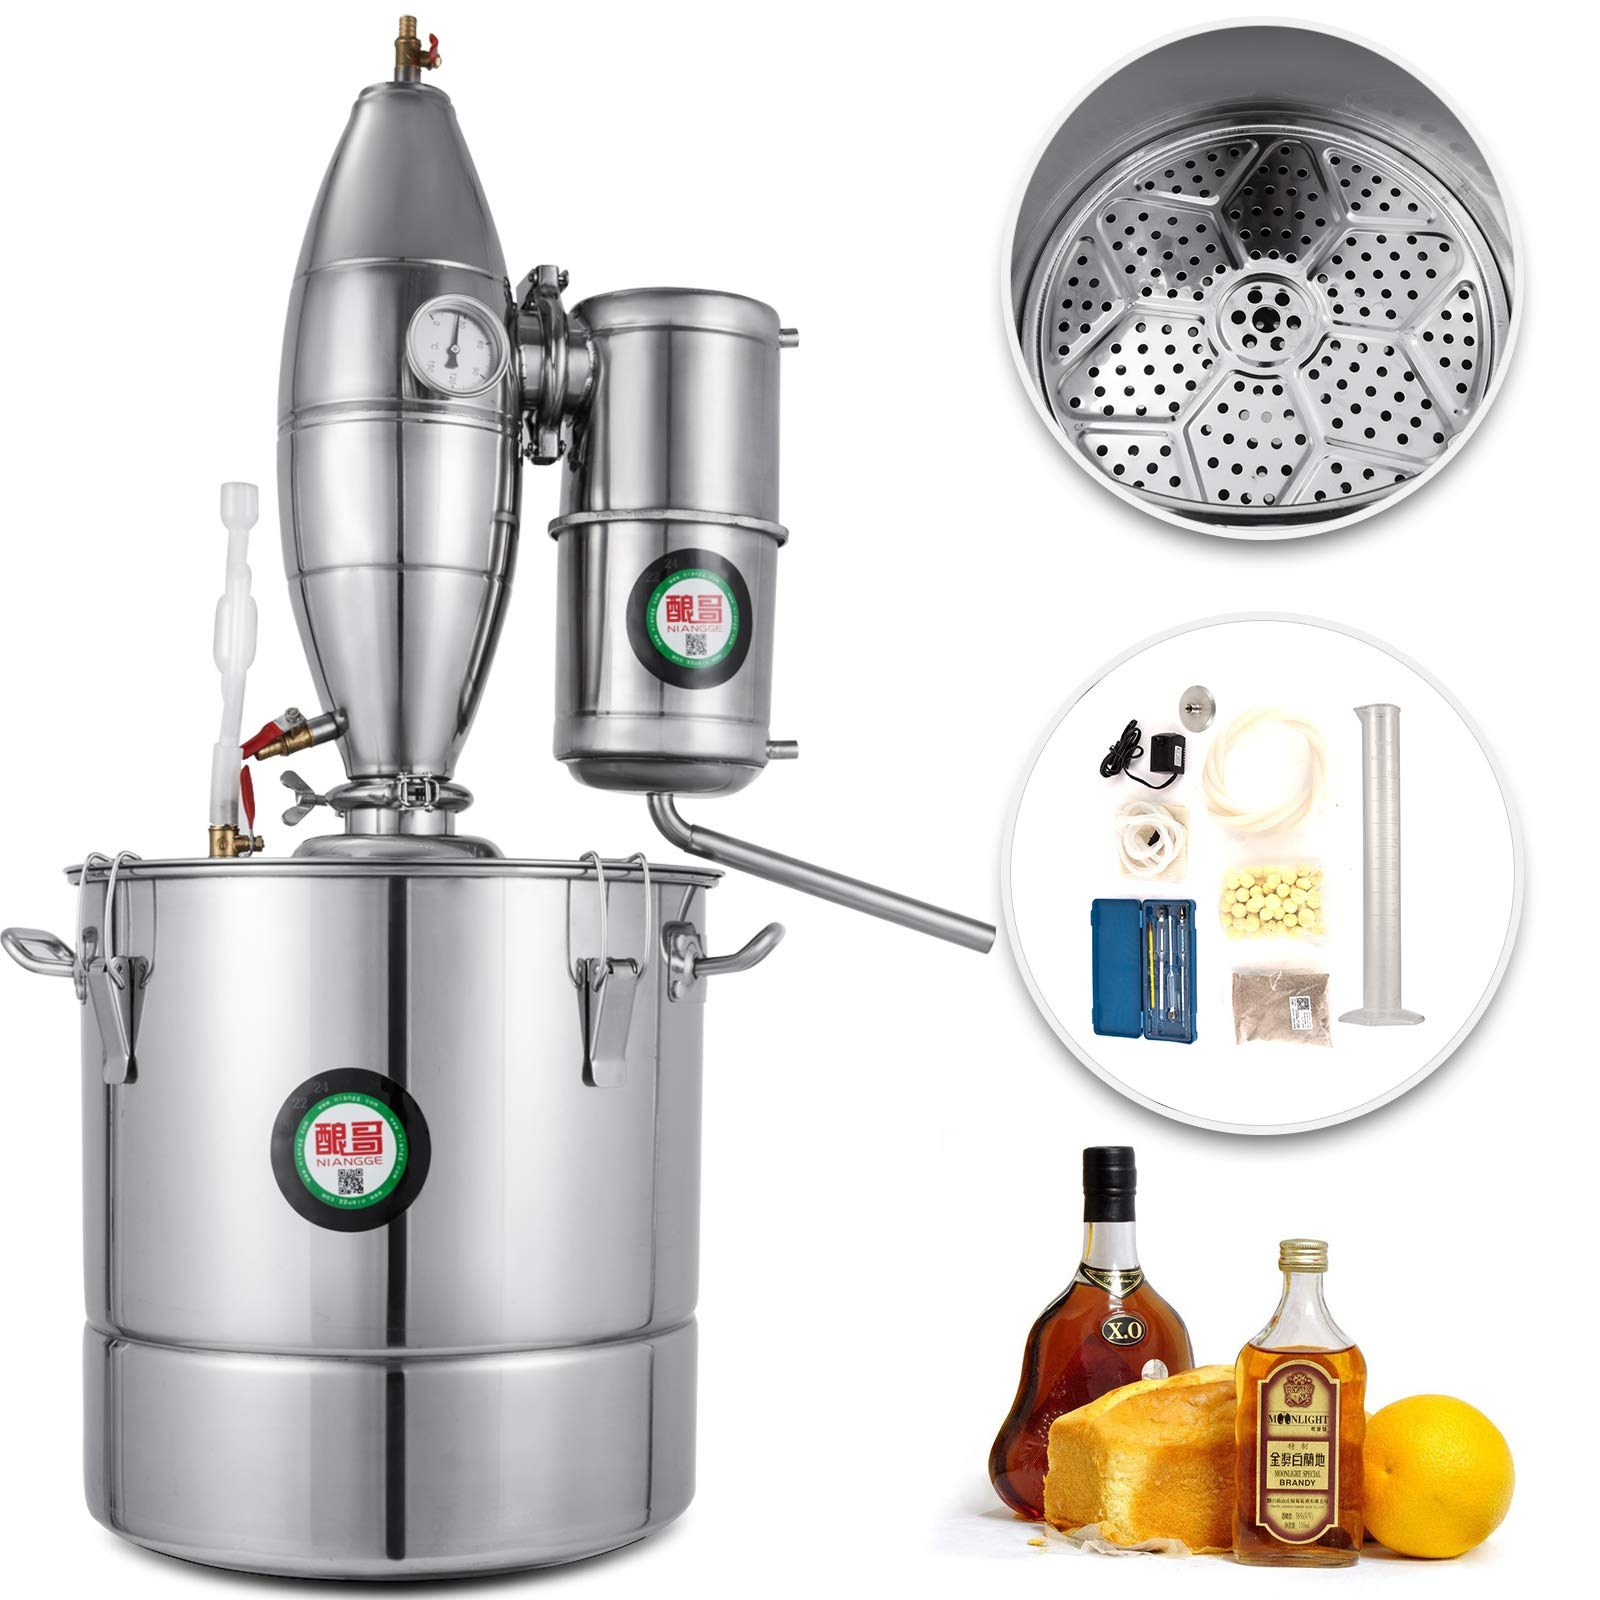 VEVOR 70L/18.5Gal Water Alcohol Distiller 304 Stainless Steel Alcohol Distiller Home Kit Moonshine Wine Making Boiler with Thermometer (70L Distiller)